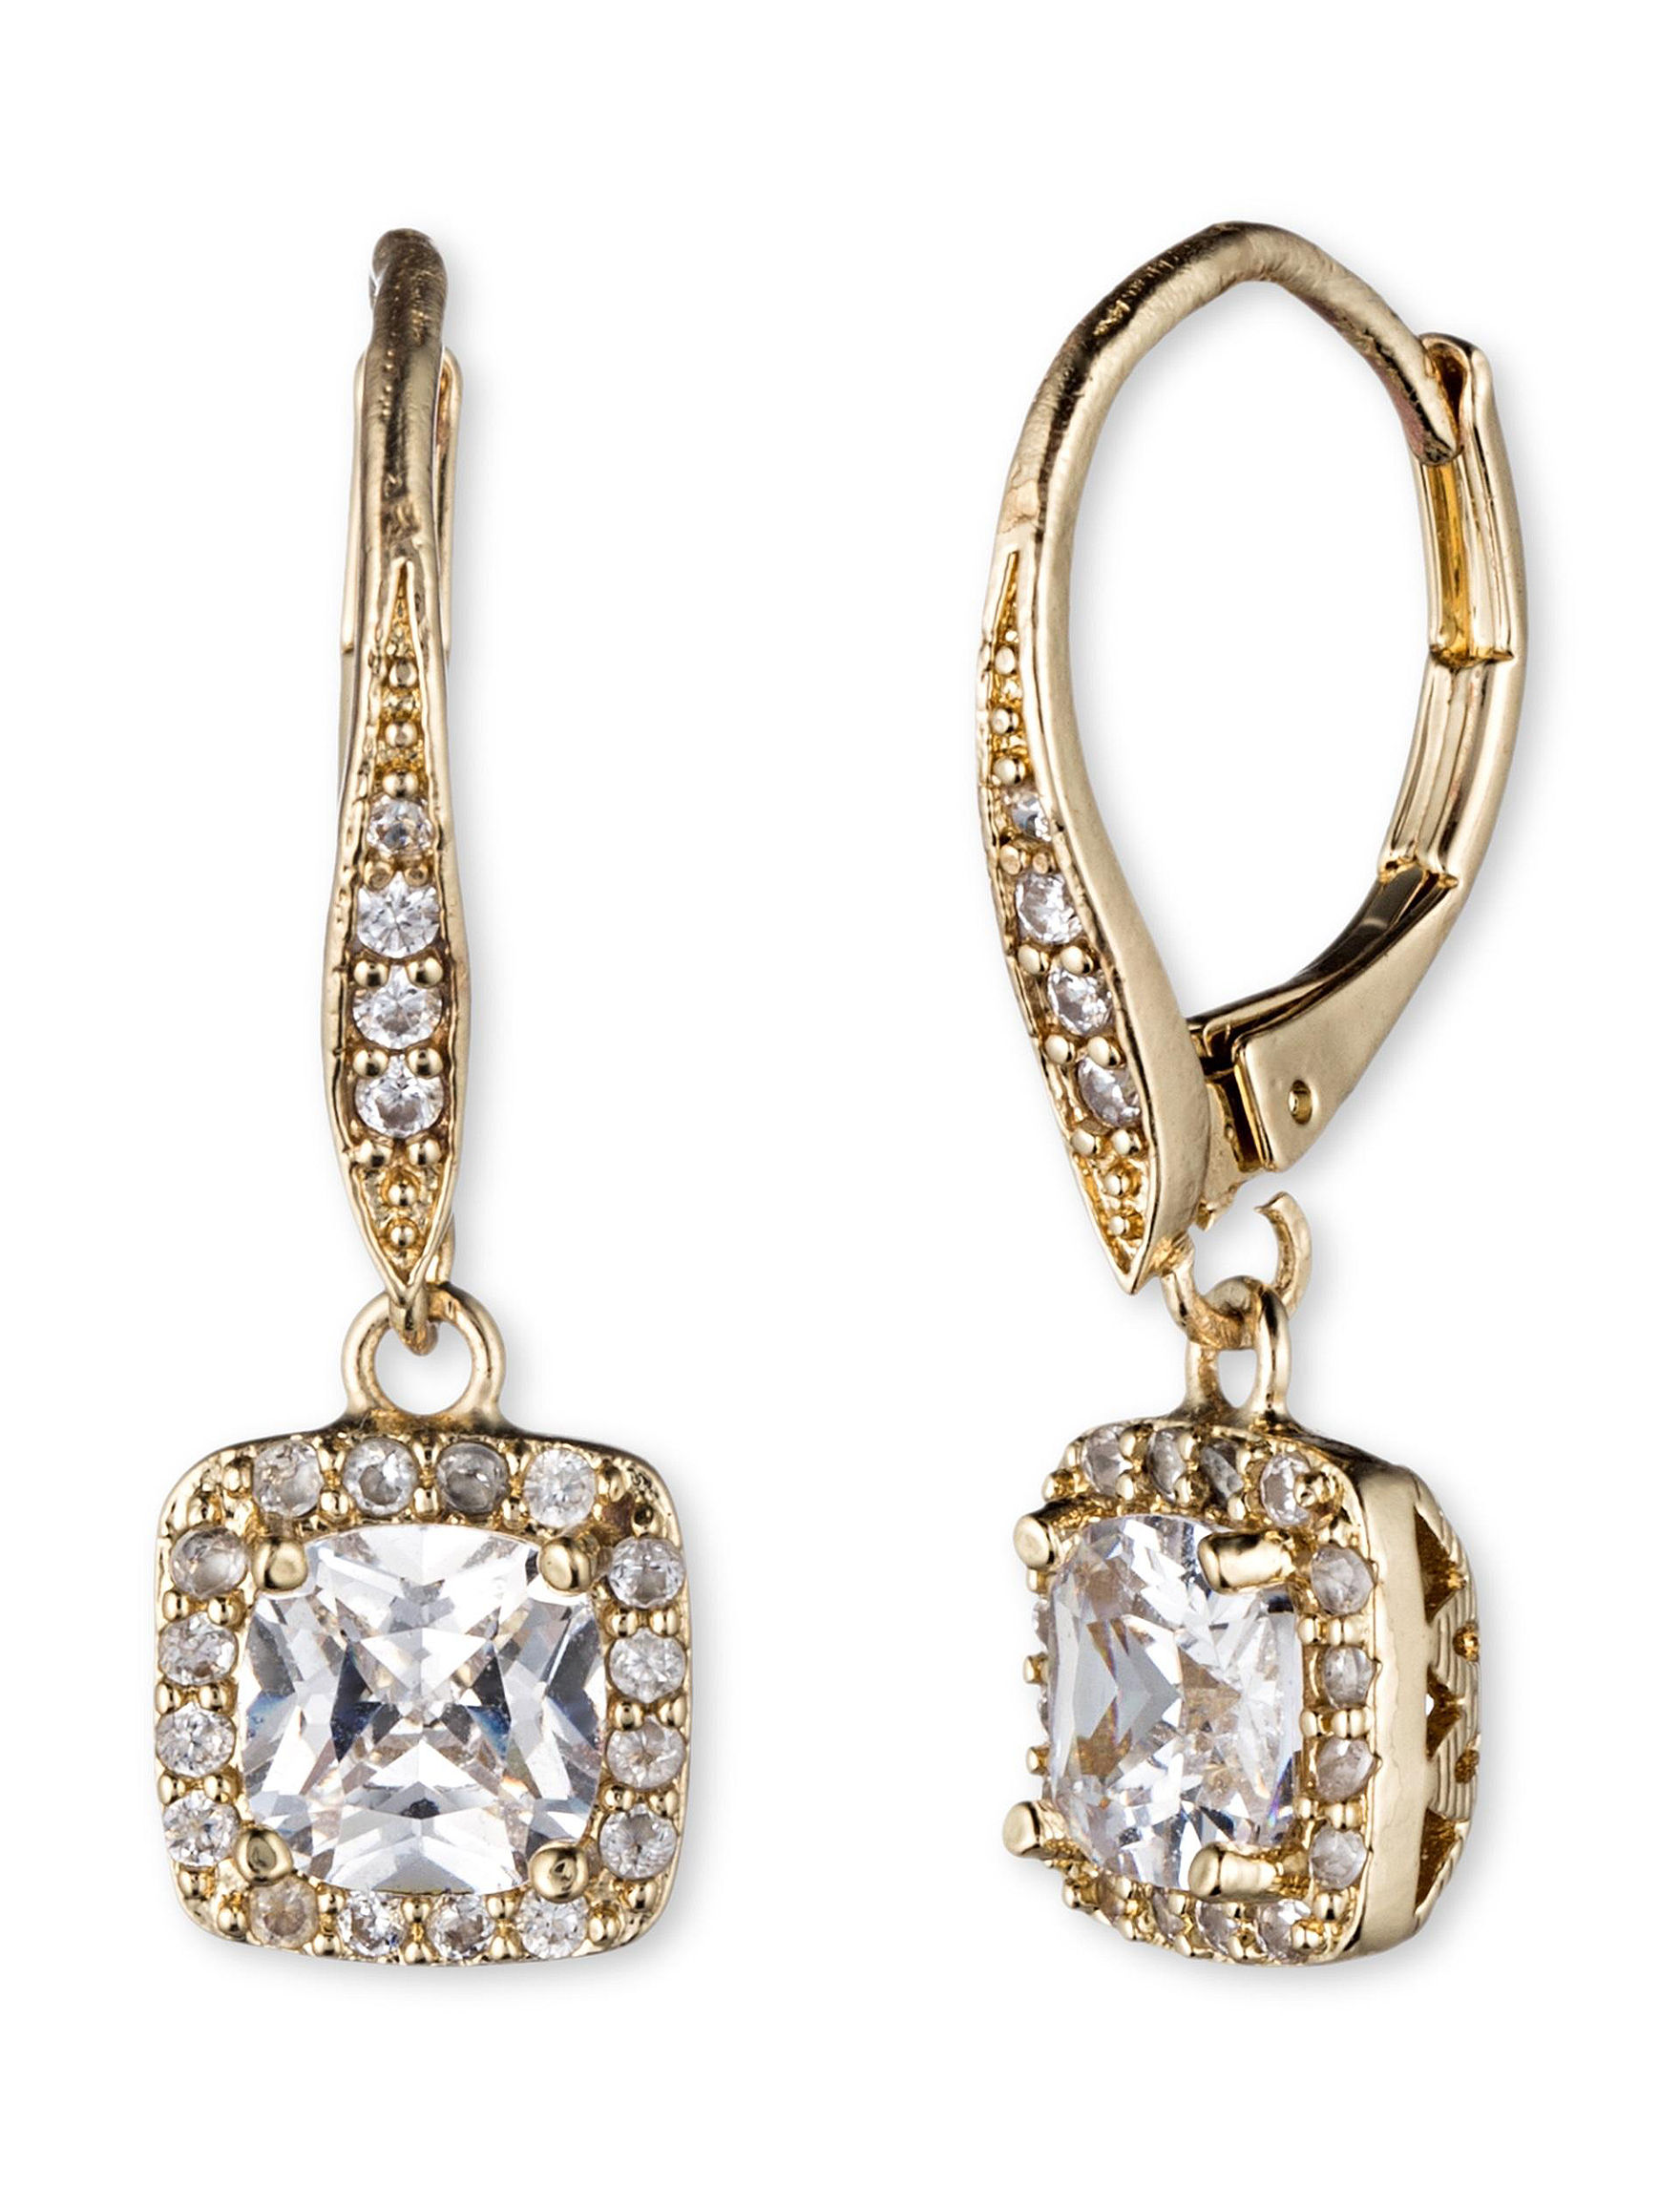 Anne Klein Gold Drops Earrings Fashion Jewelry